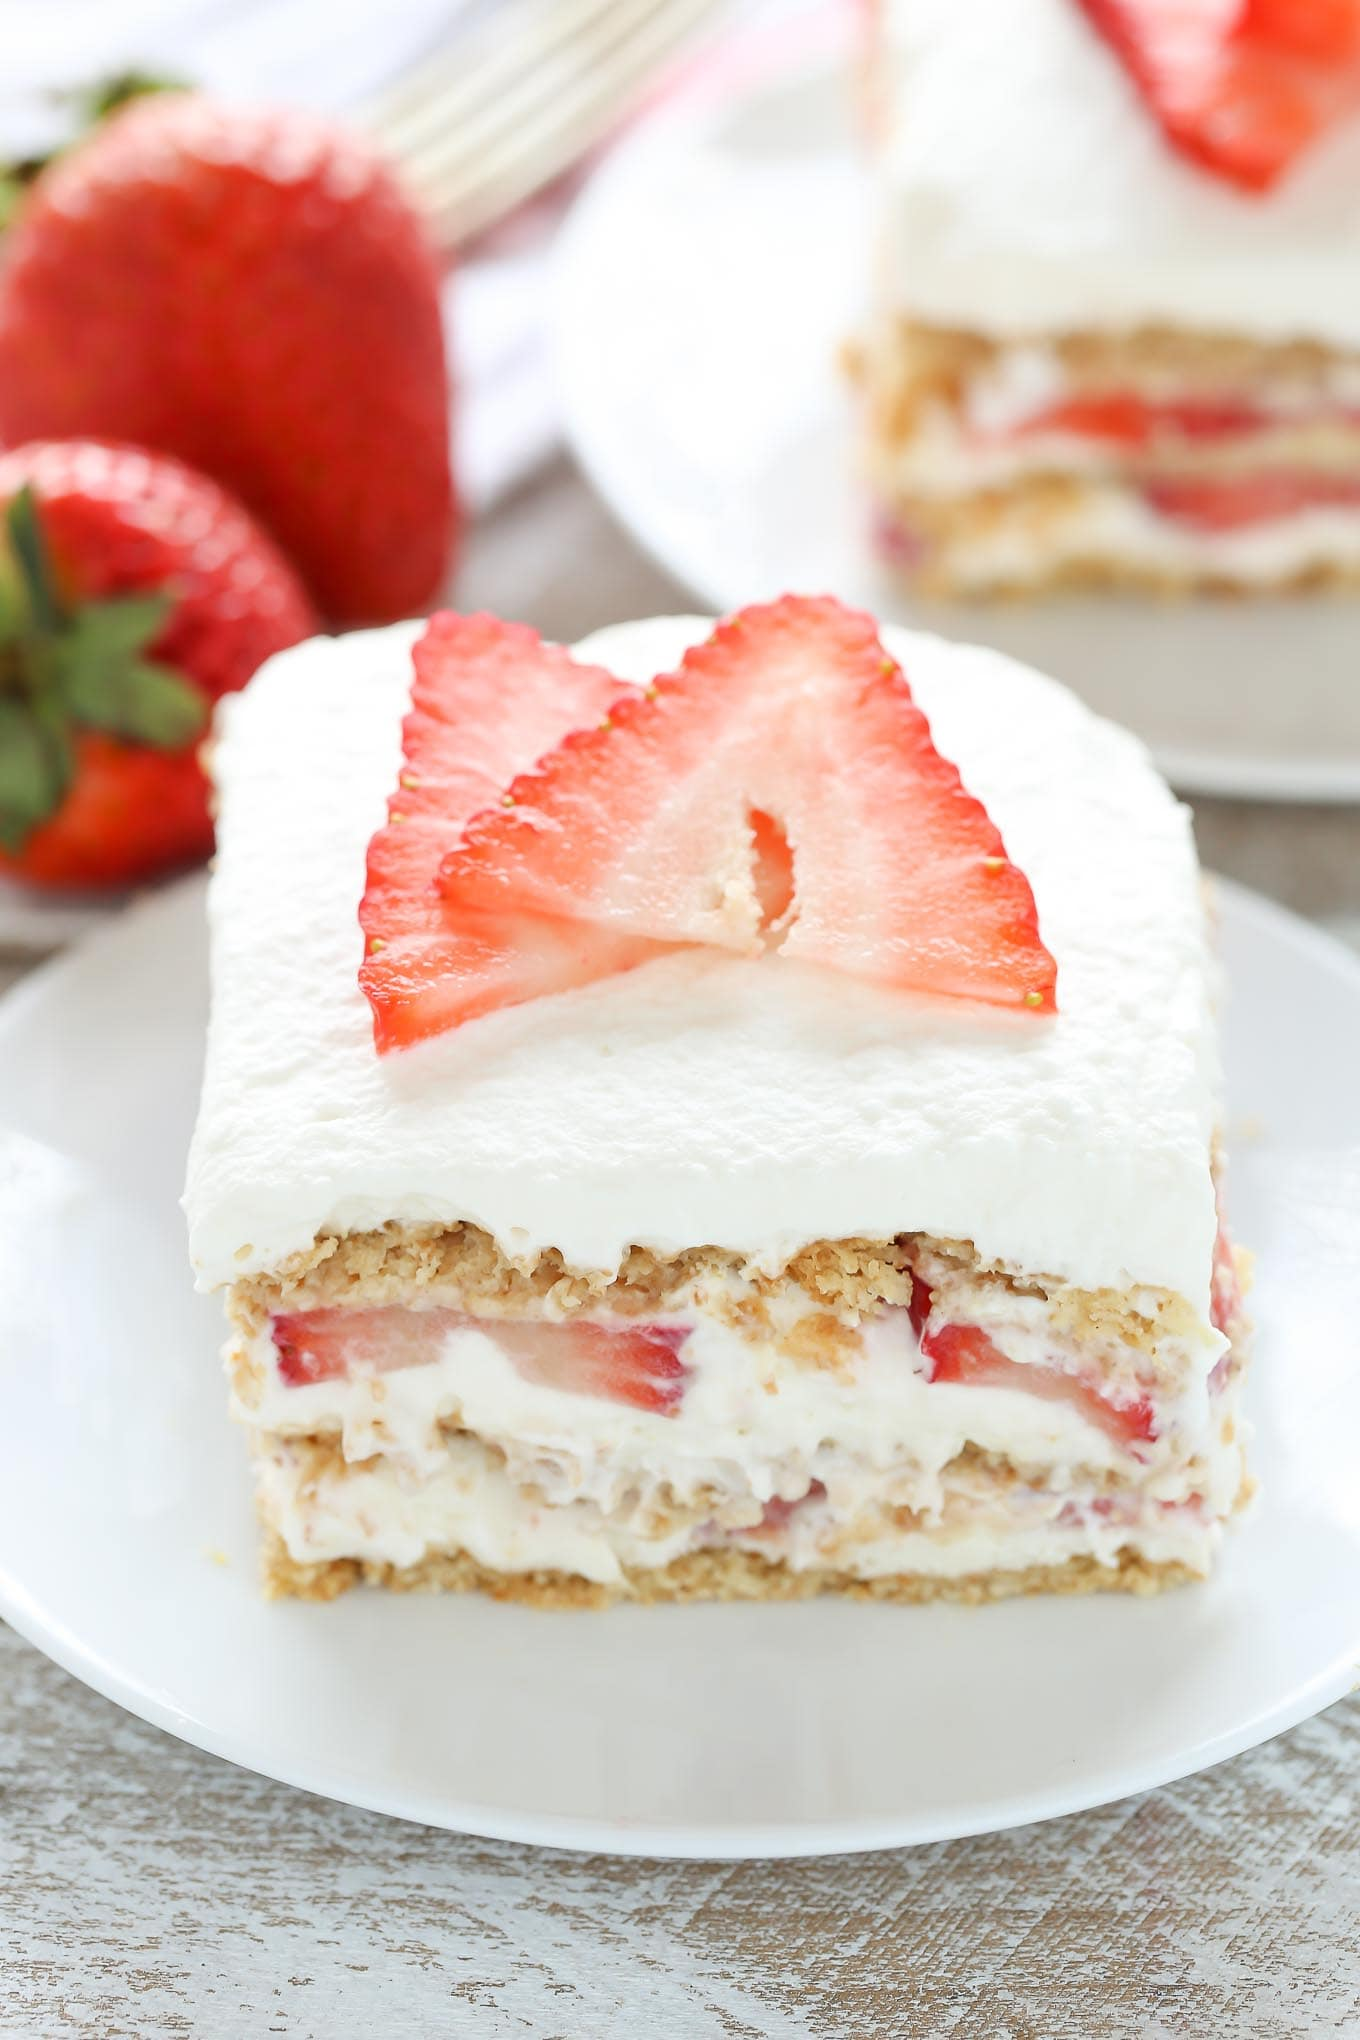 Layers of graham crackers, no-bake cheesecake filling, and strawberries topped off with homemade whipped cream. This No-Bake Strawberry Cheesecake Icebox Cake is so easy to make and delicious!